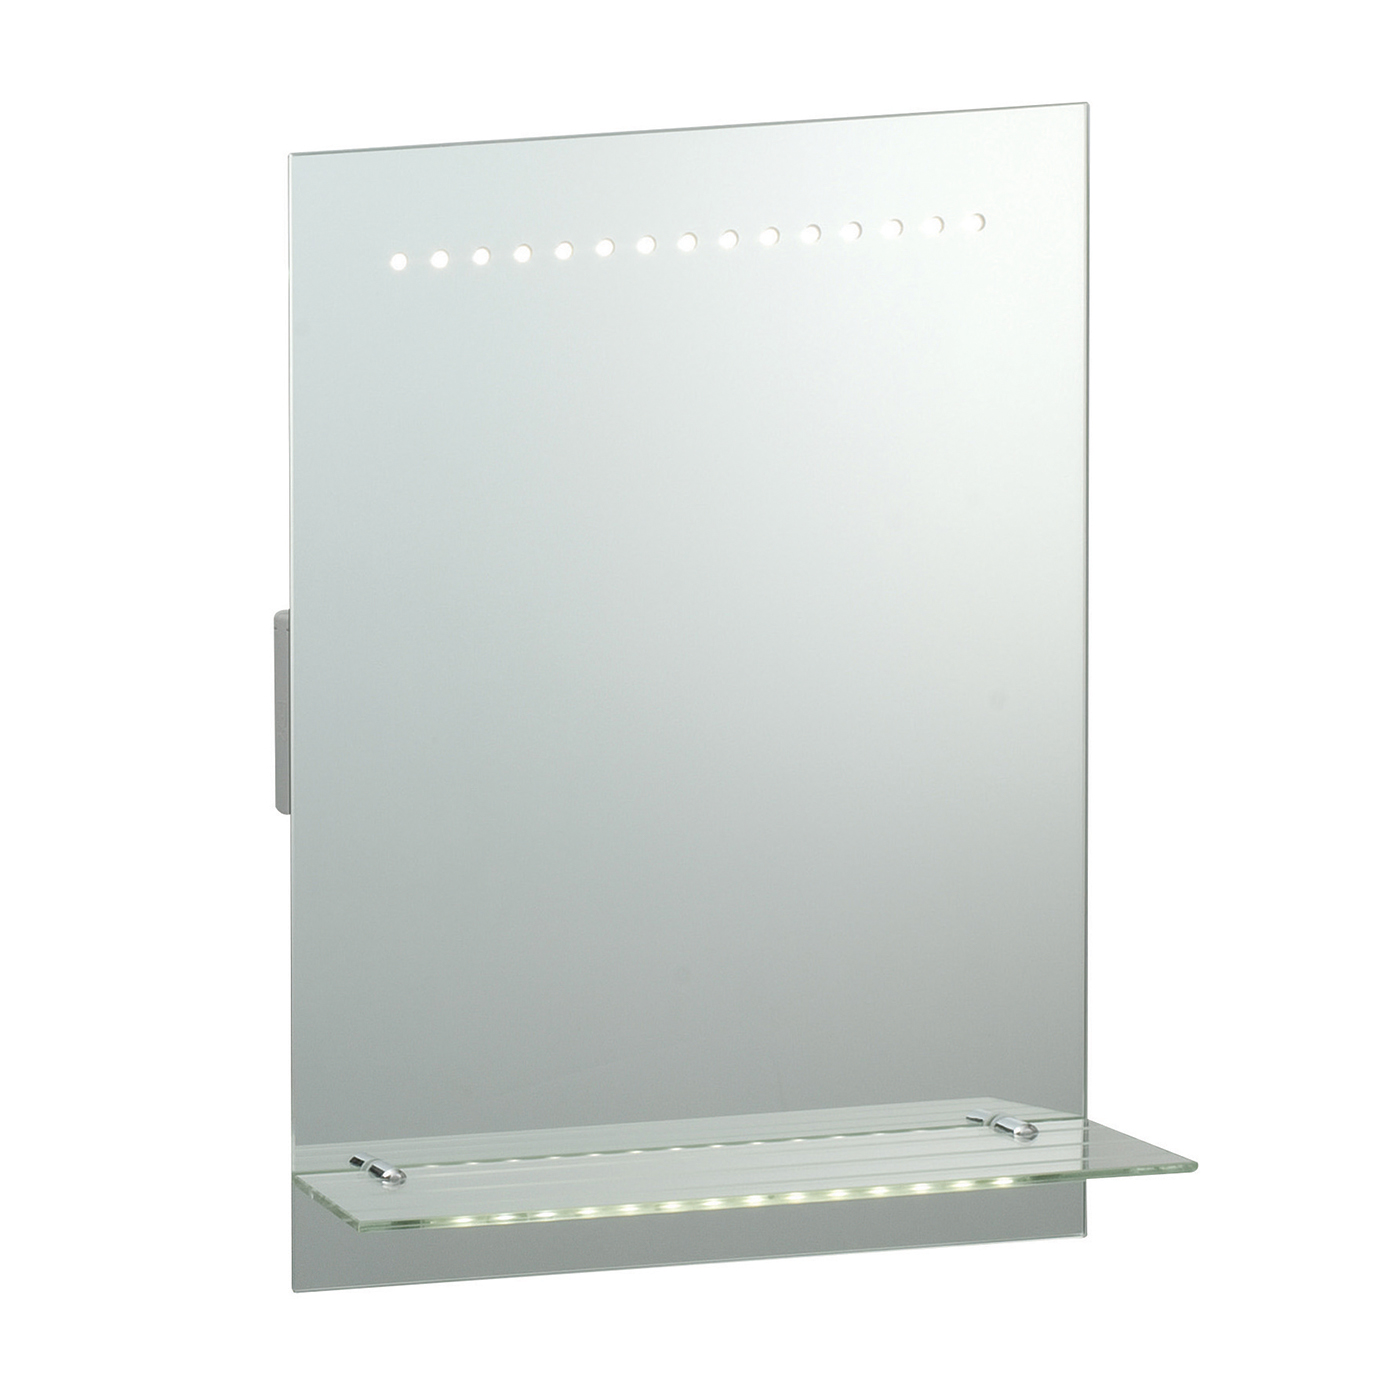 Endon Omega LED shaver bathroom mirror IP44 1W sensor H: 500mm W: 390mm Thumbnail 1